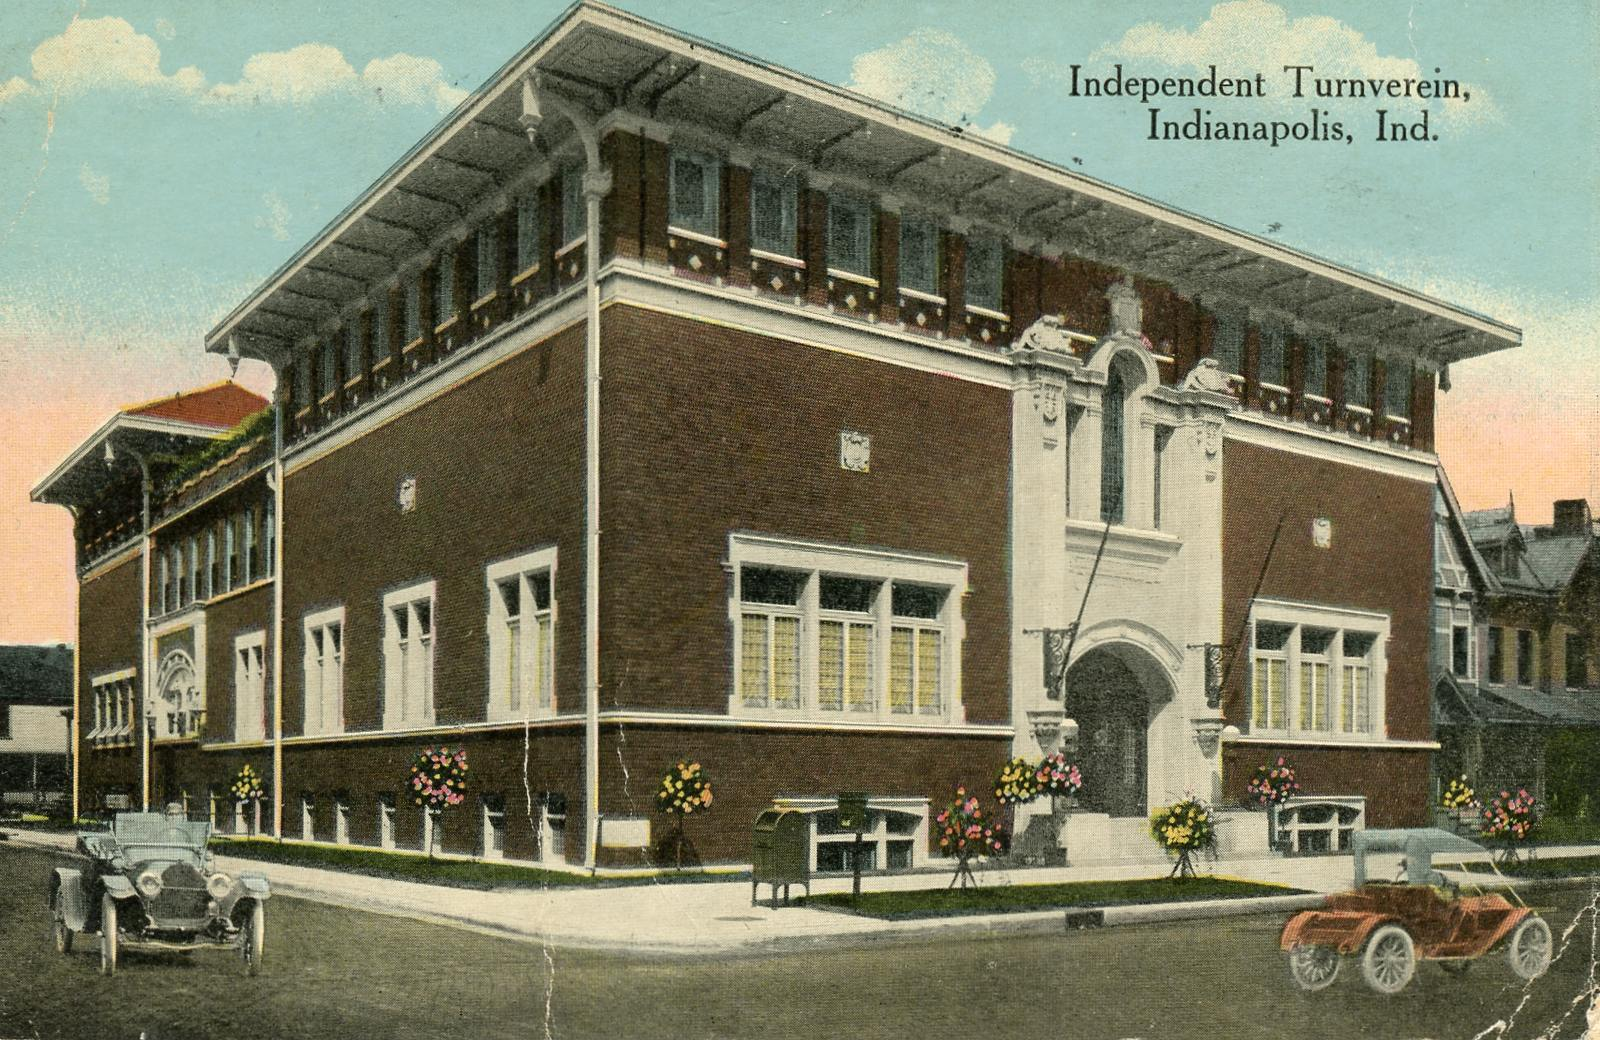 Then & Now: Independent Turnverein, 902 N. Meridian